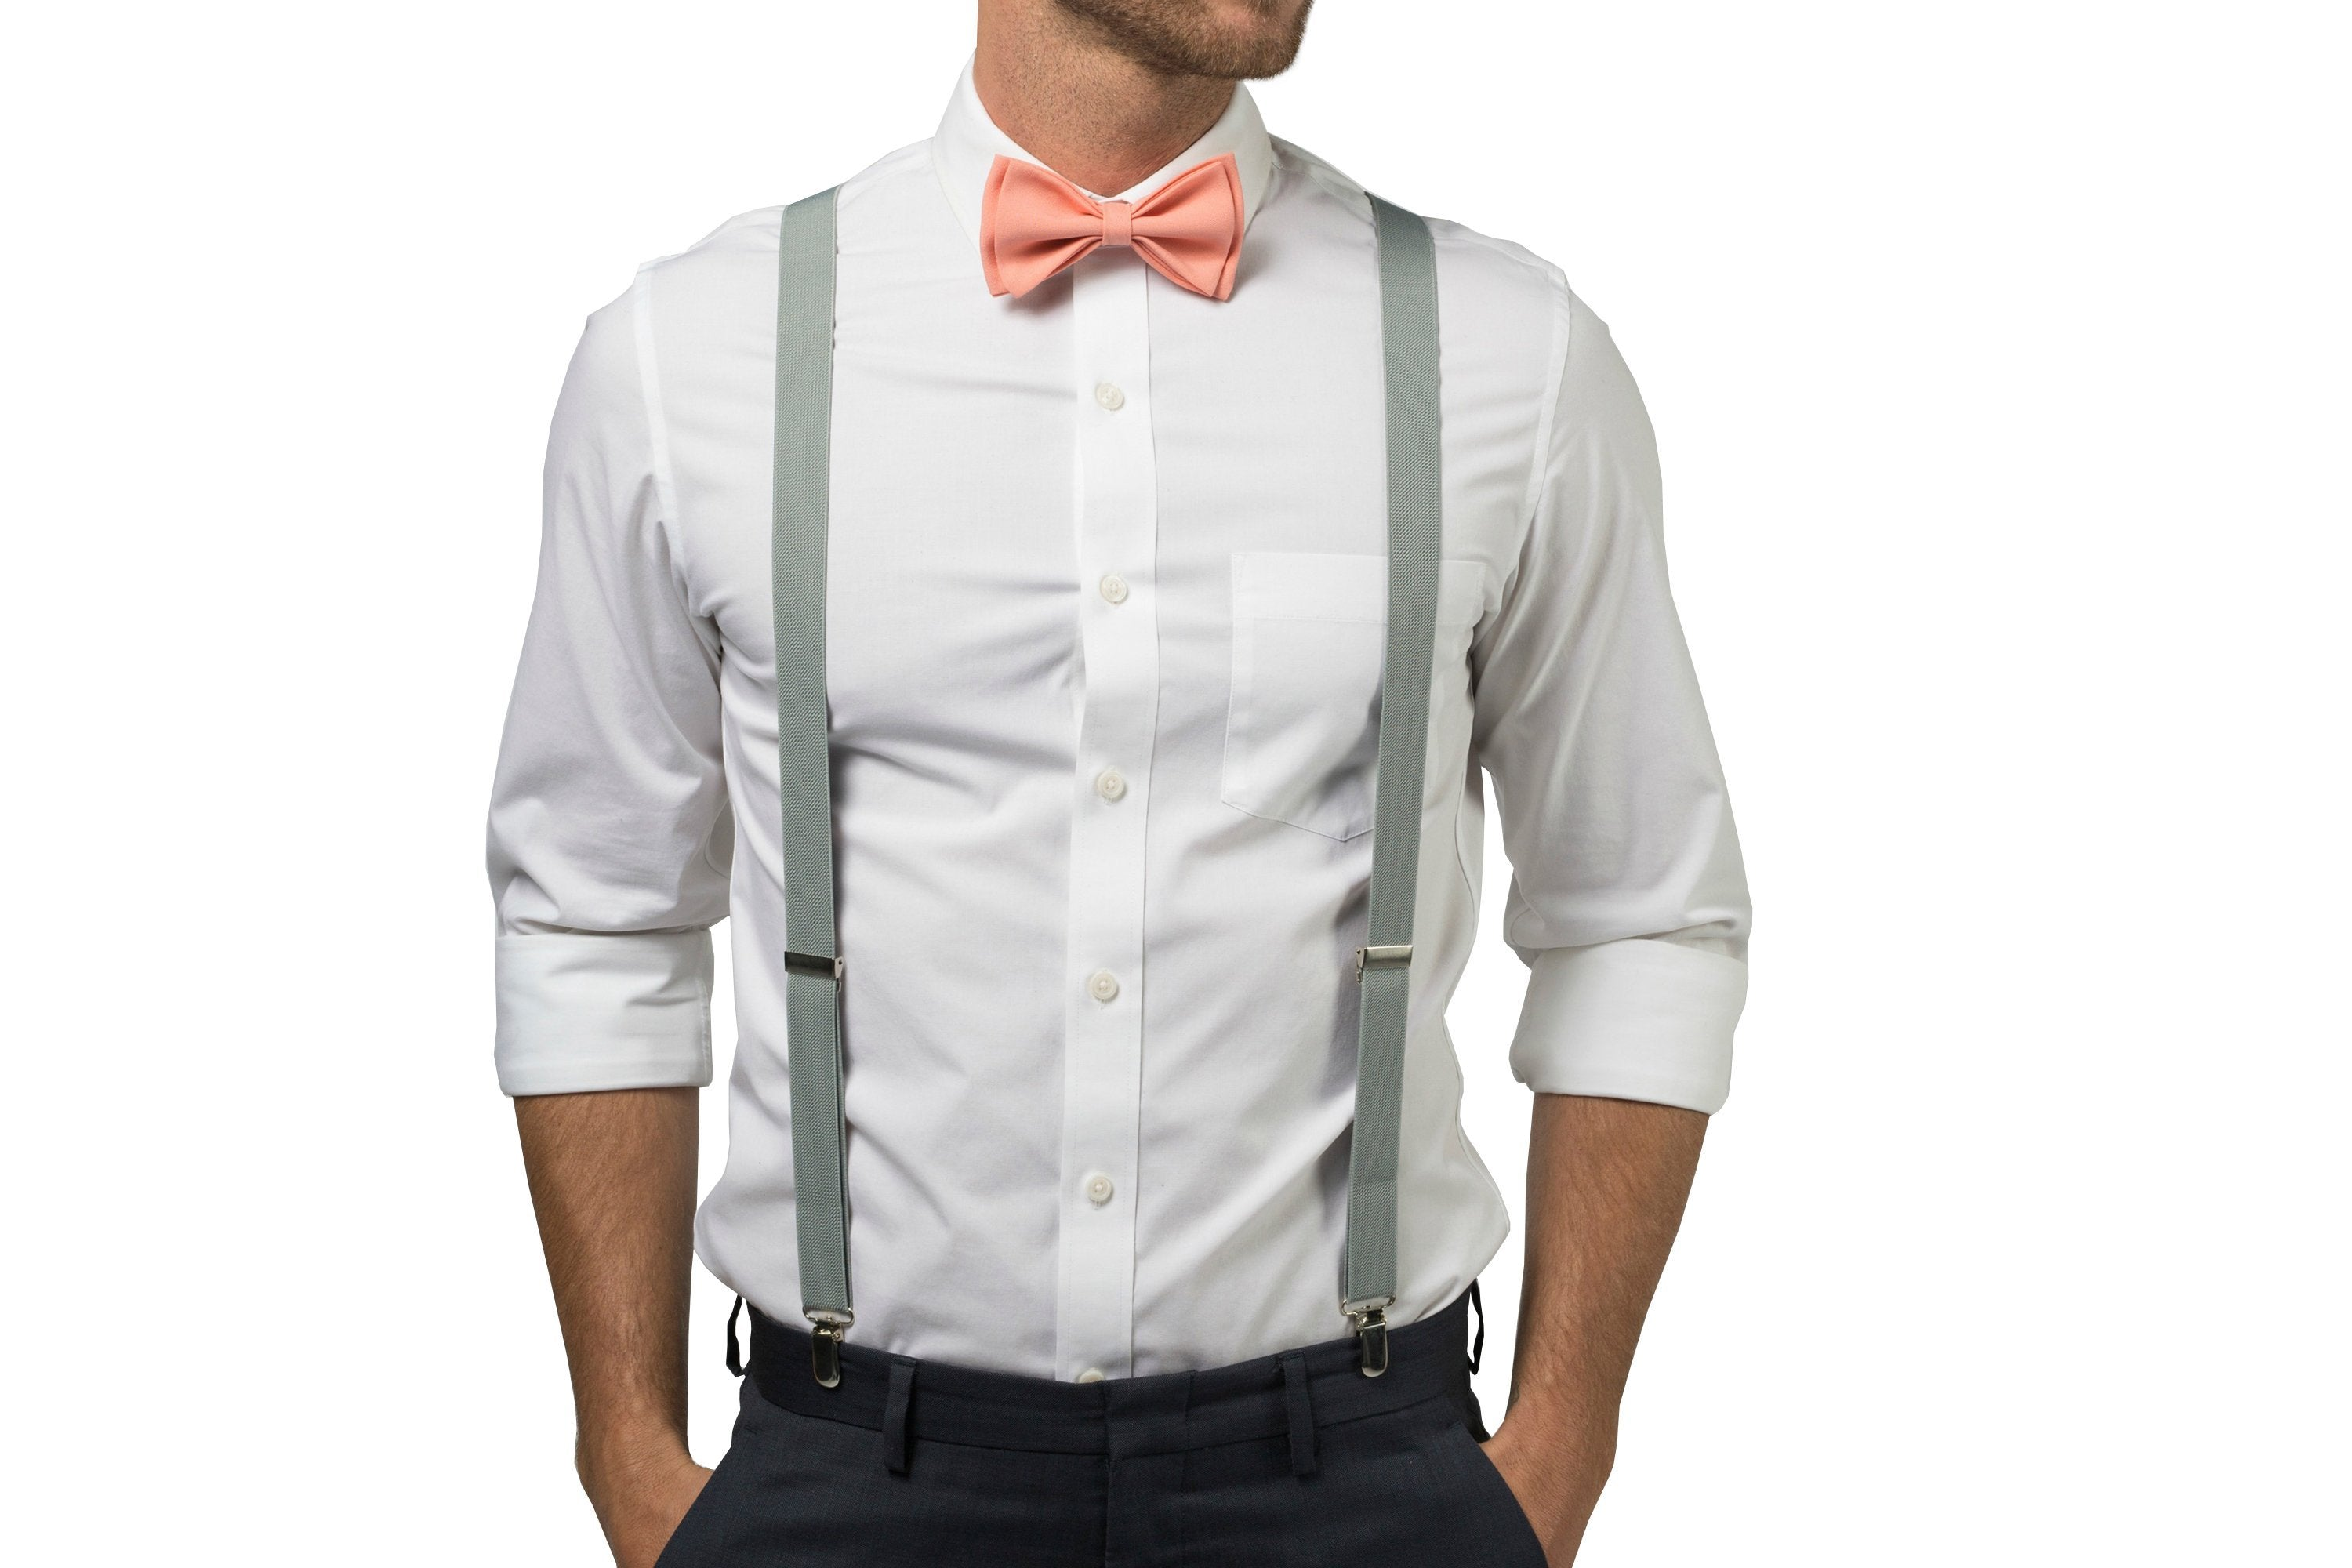 a513e31d37c1 Light Gray Suspenders & Peach Coral Bow Tie | Armoniia